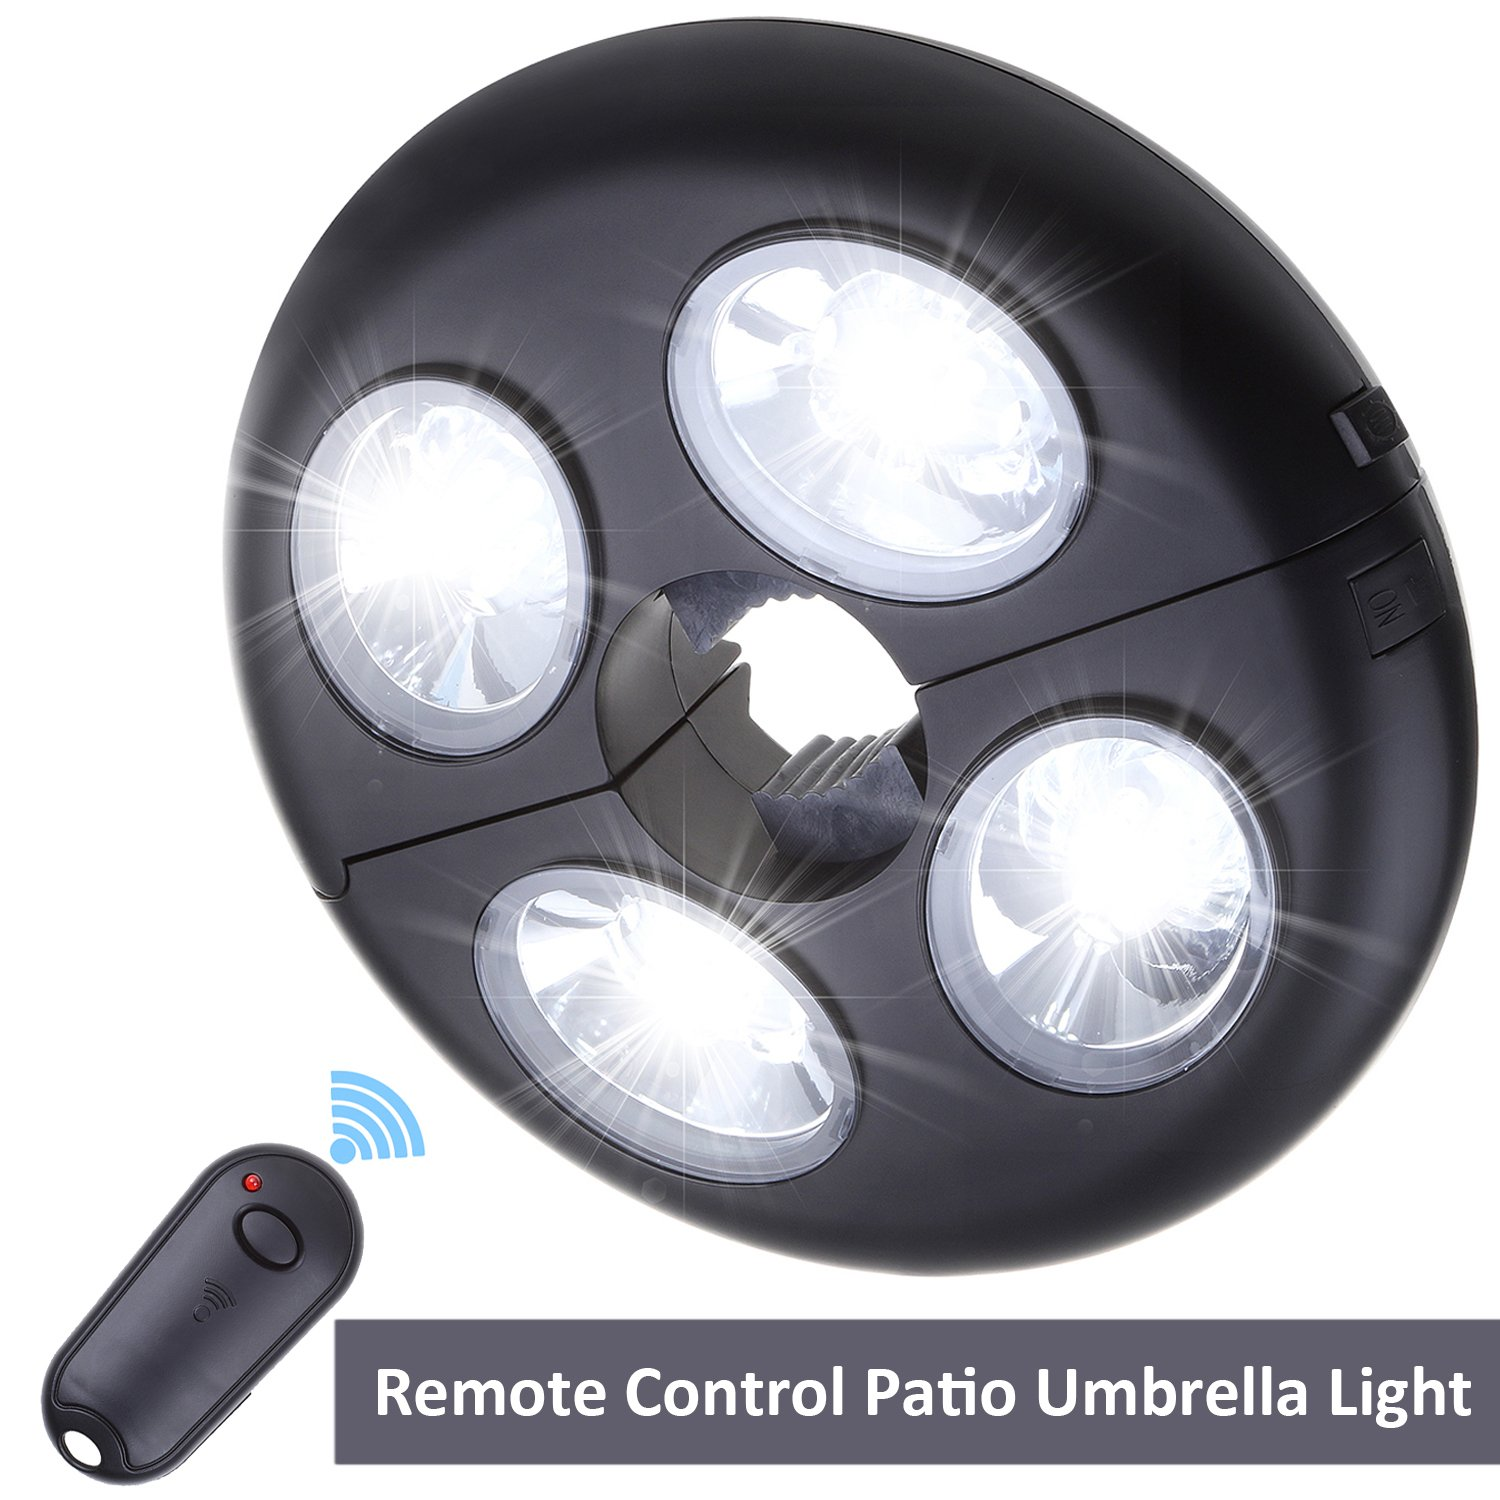 Remote Control Patio Umbrella Light 2 Bright Level Dimming Umbrella Pole Lights 27 LED Night Light Outdoor Camping Lamp Tents Lighting White Light